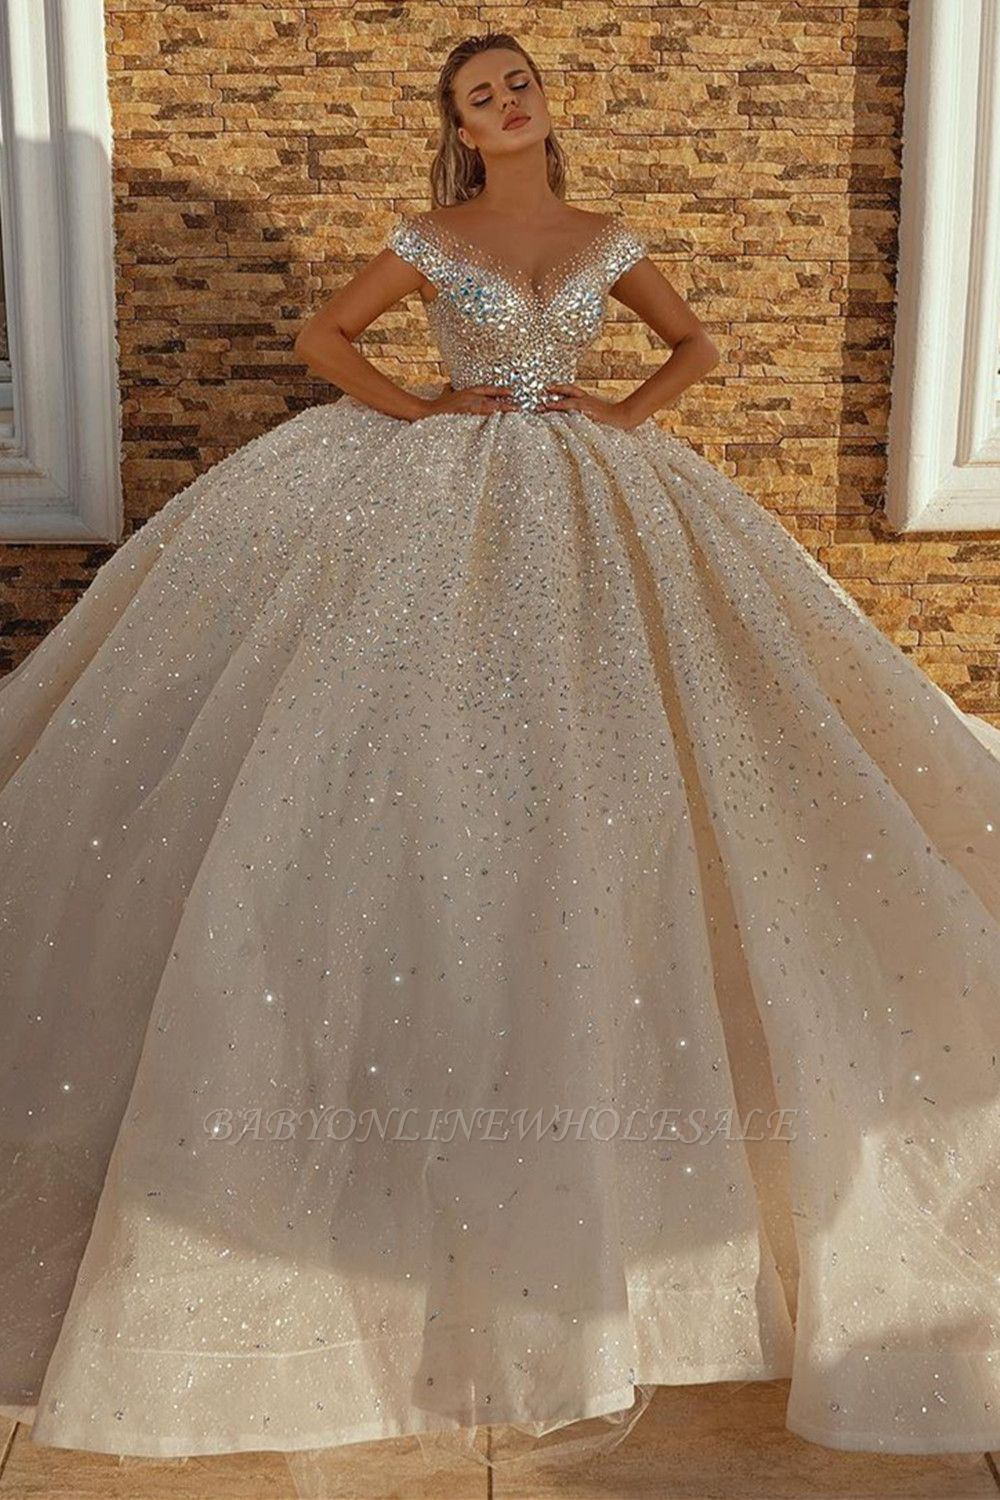 Off the Shoulder Kristallprinzessin Ballkleid Pailletten Brautkleider